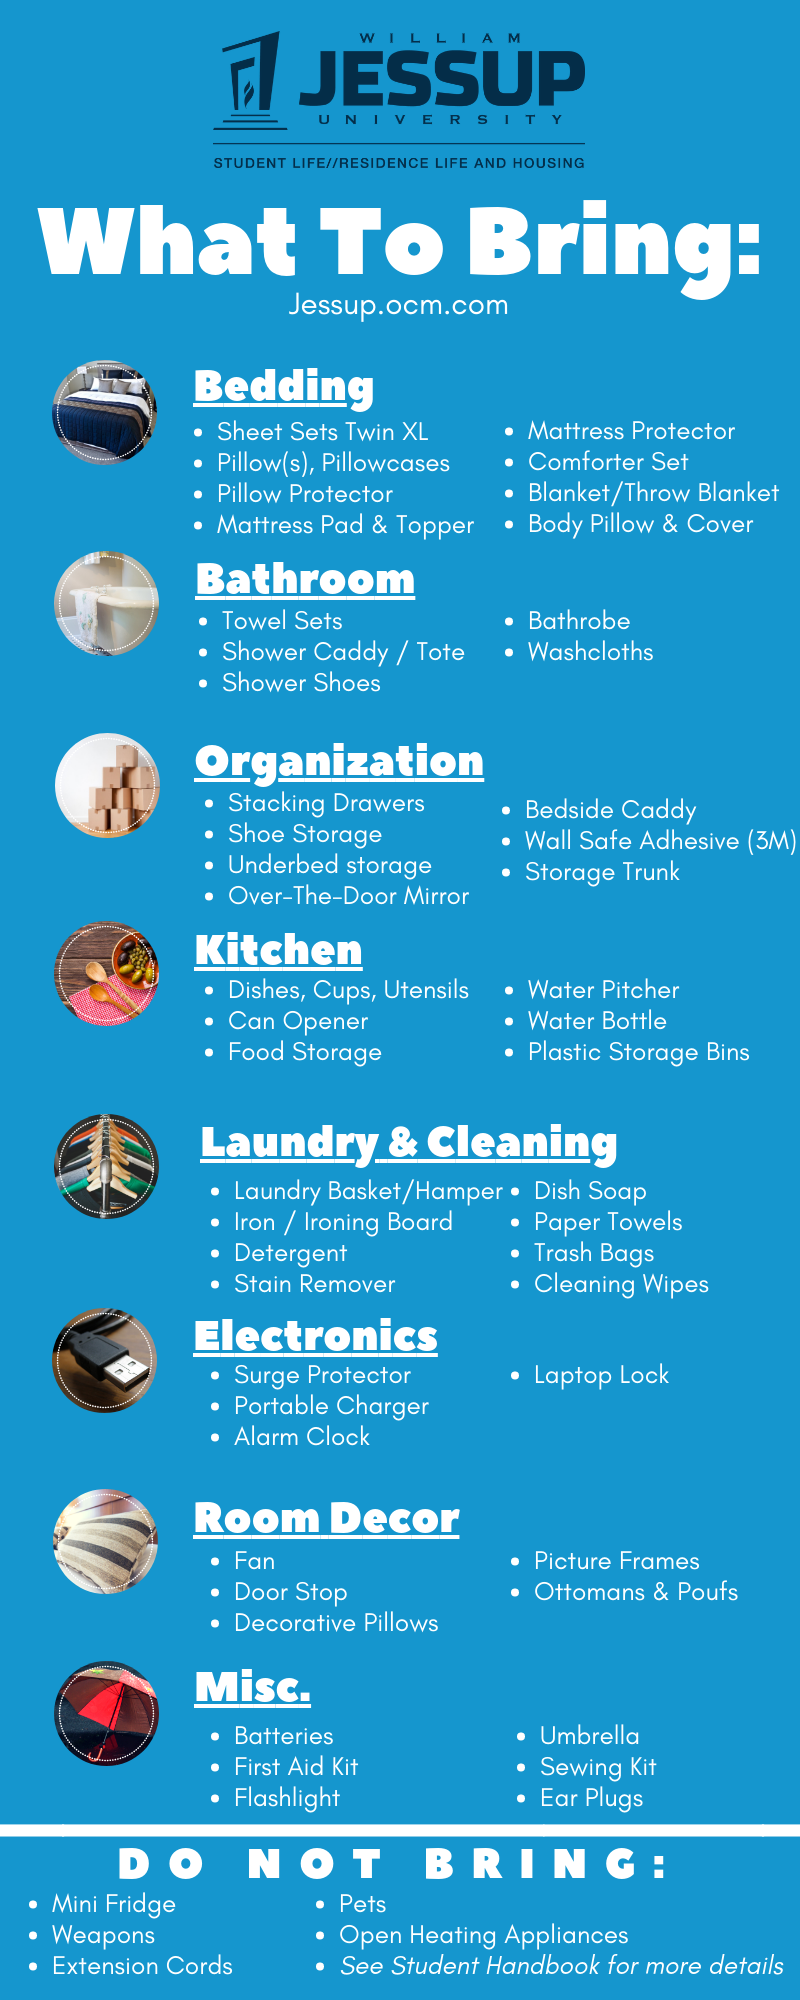 What to Bring List | Residence Life and Housing